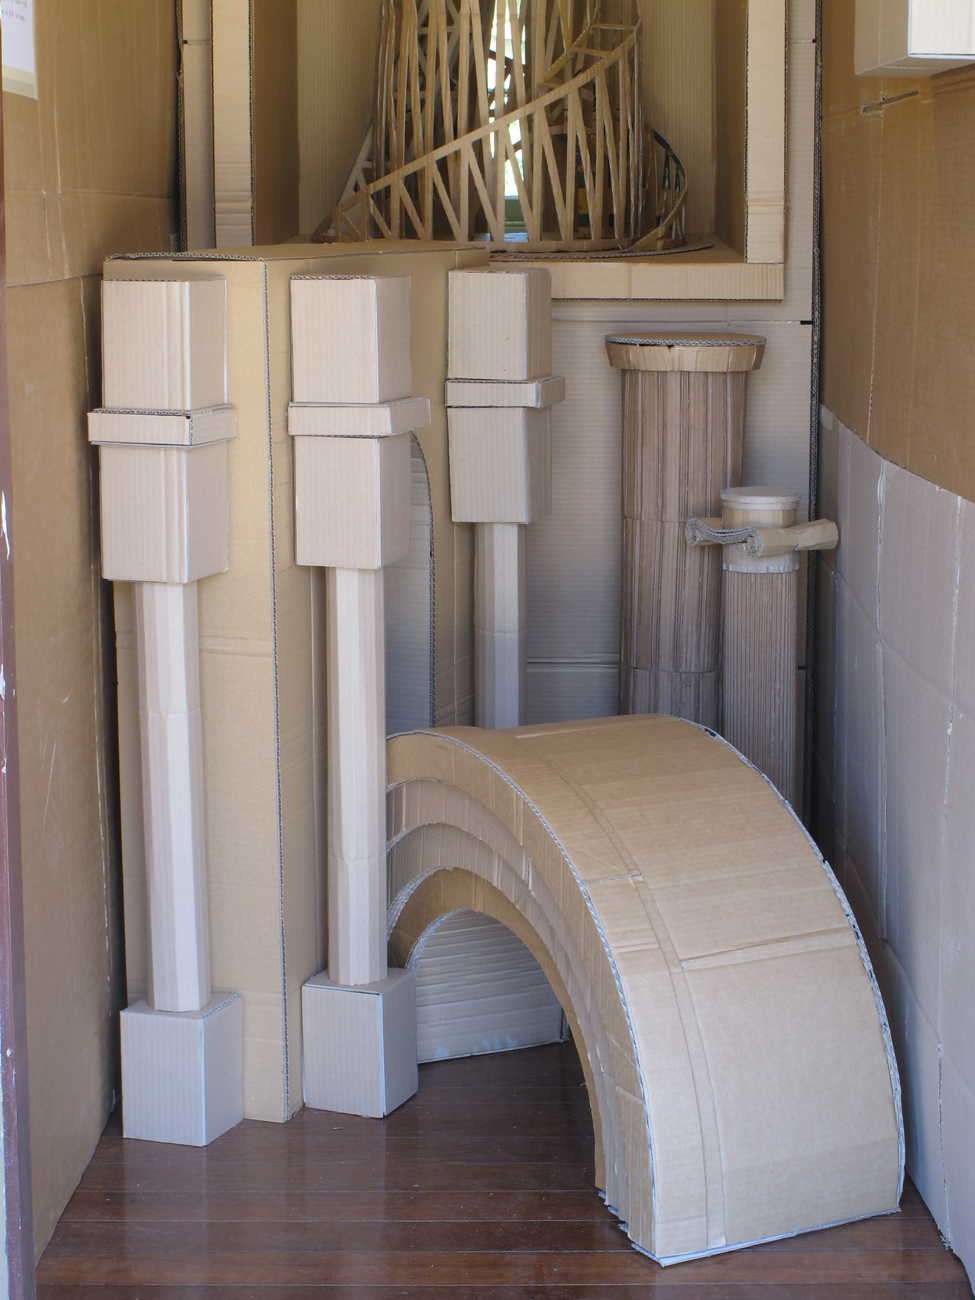 arch and column models on floor